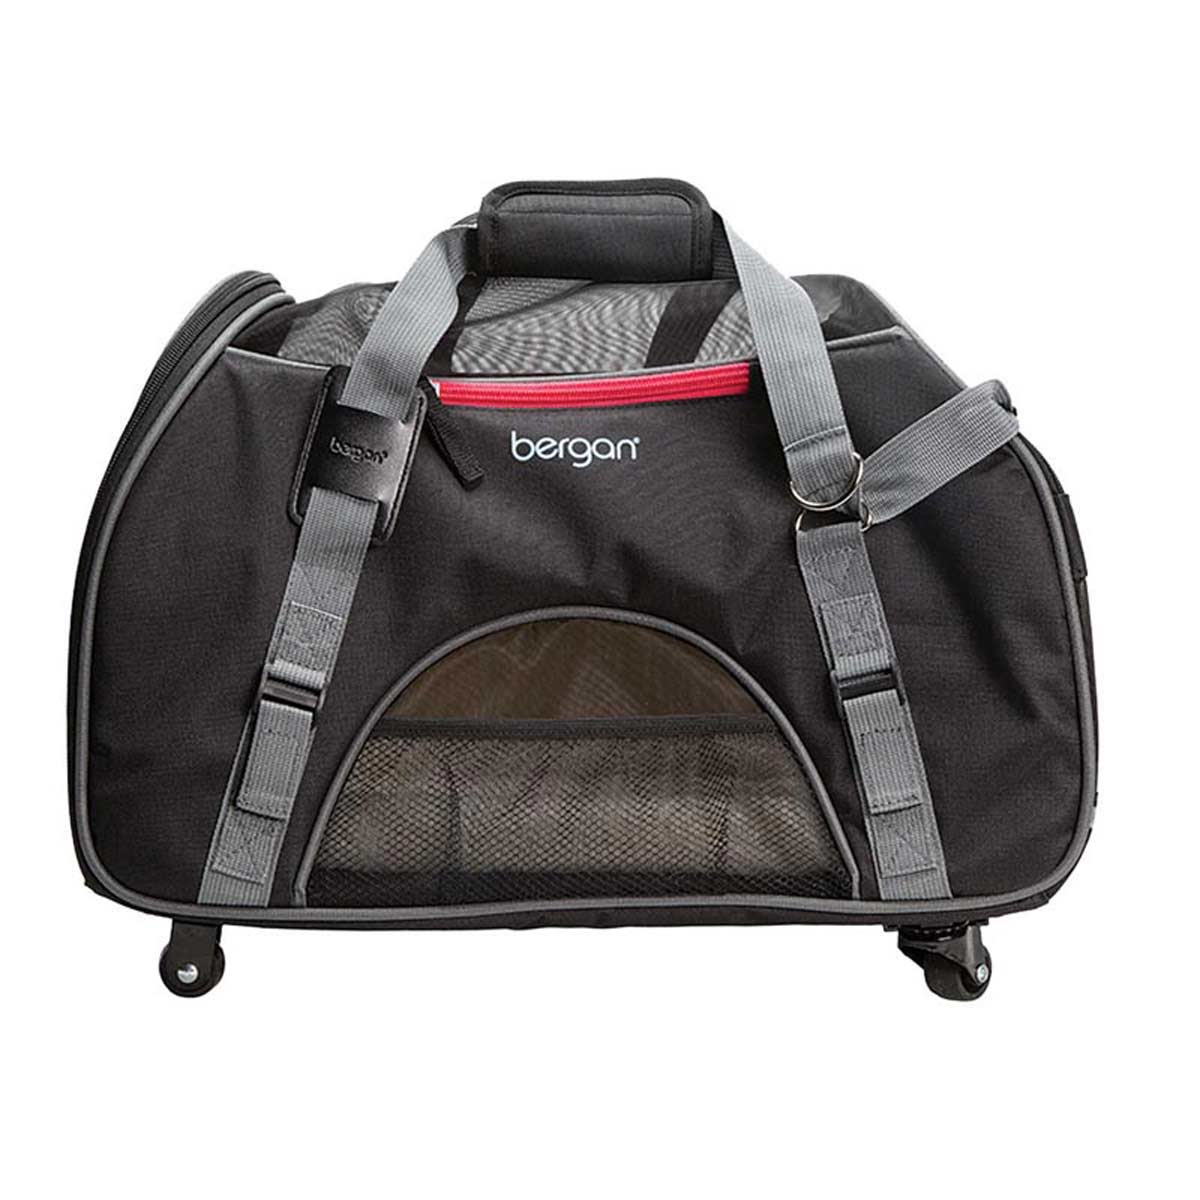 "Bergan Wheeled Comfort Carrier for Traveling with Small Animals 13""L X 19.75""W X 10.75""D"